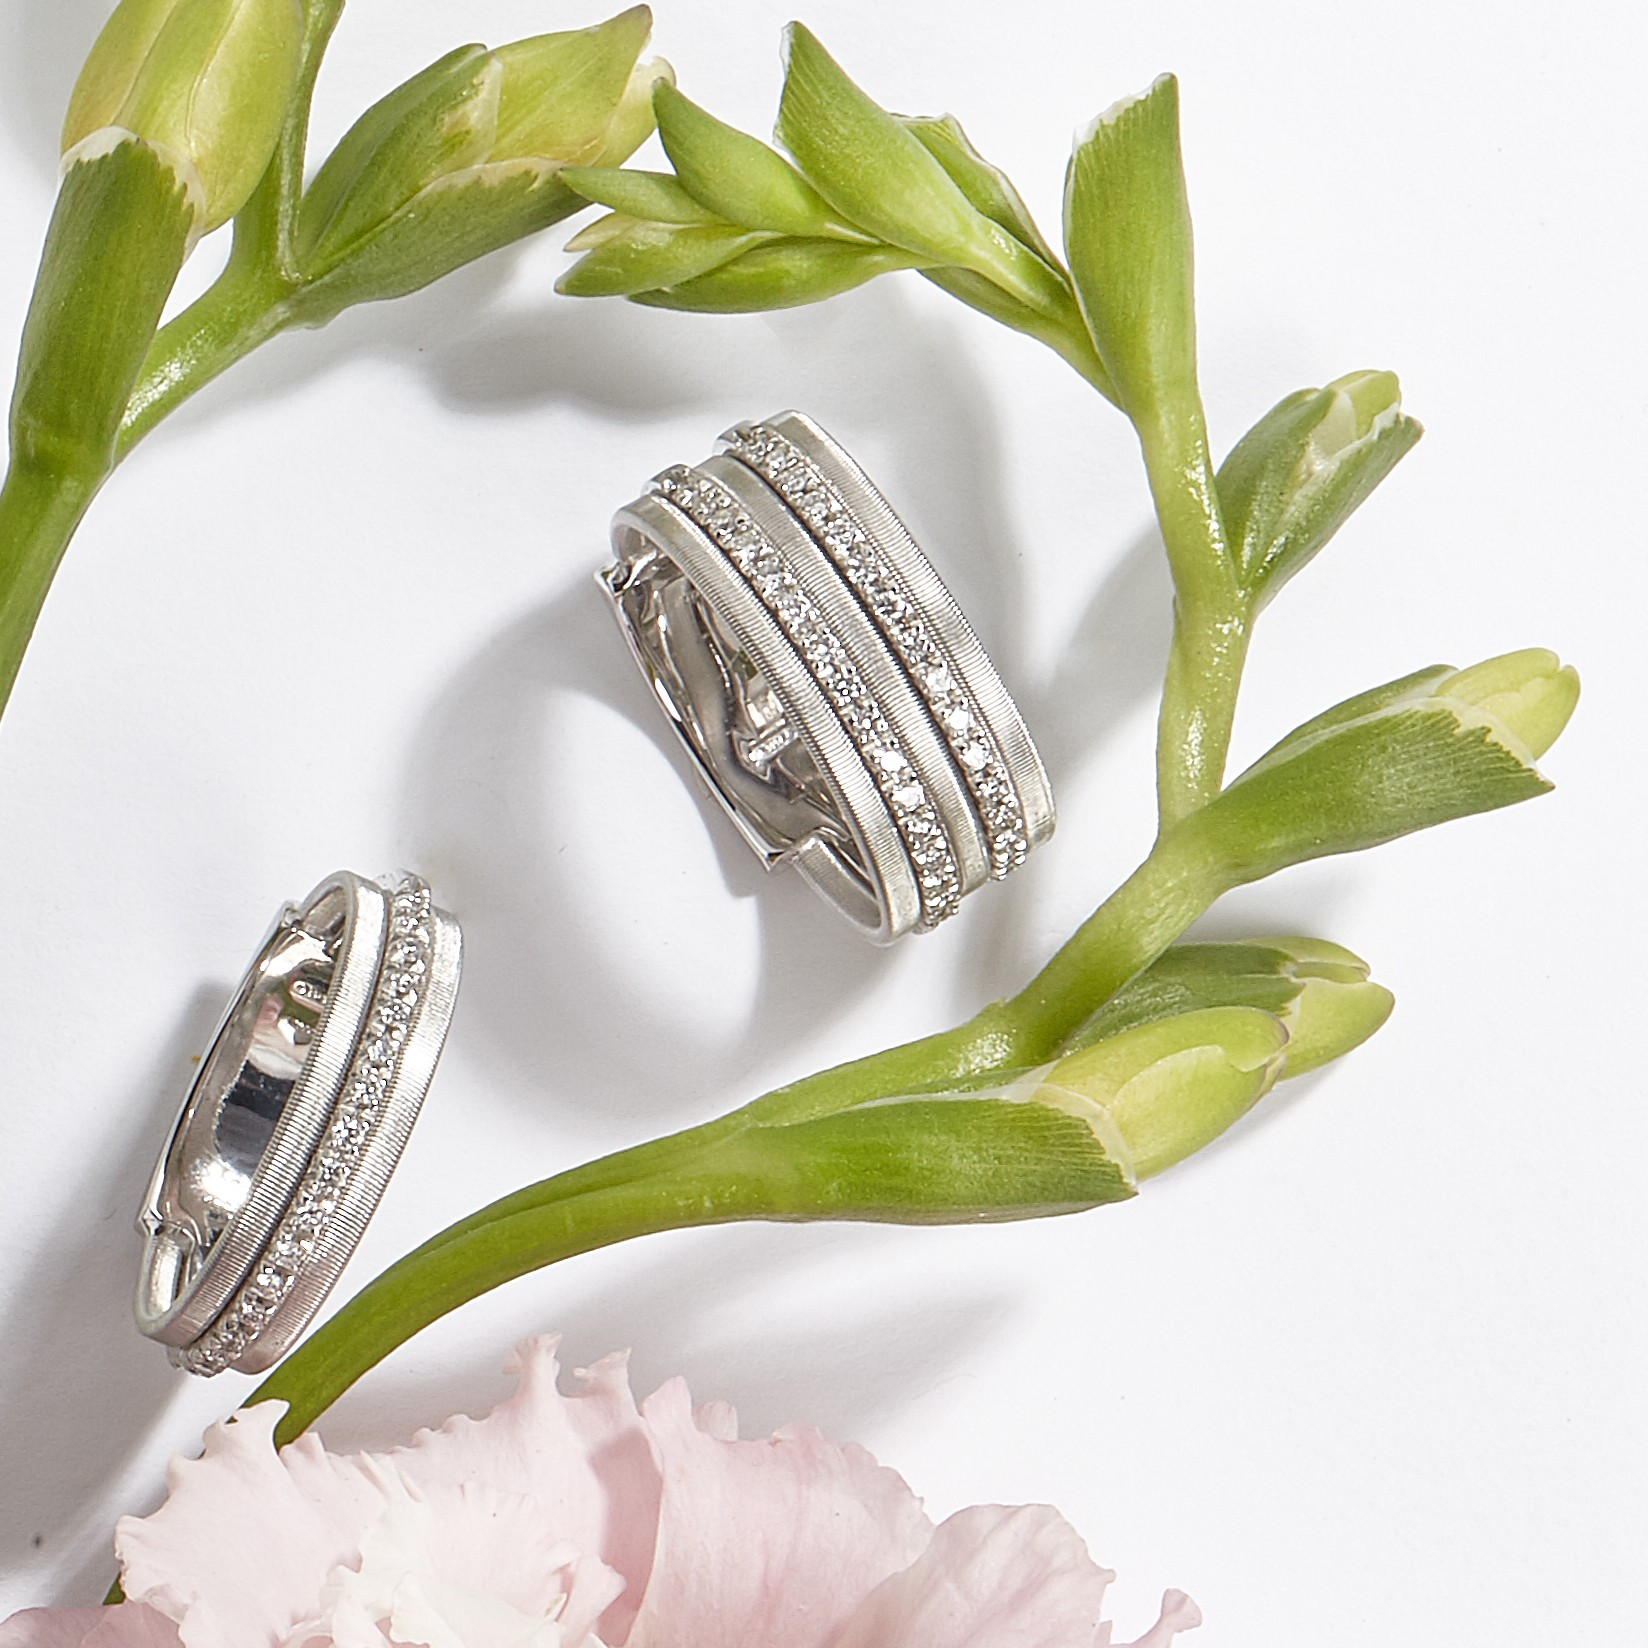 Marco Bicego white gold rings in Palm Desert, California on El Paseo